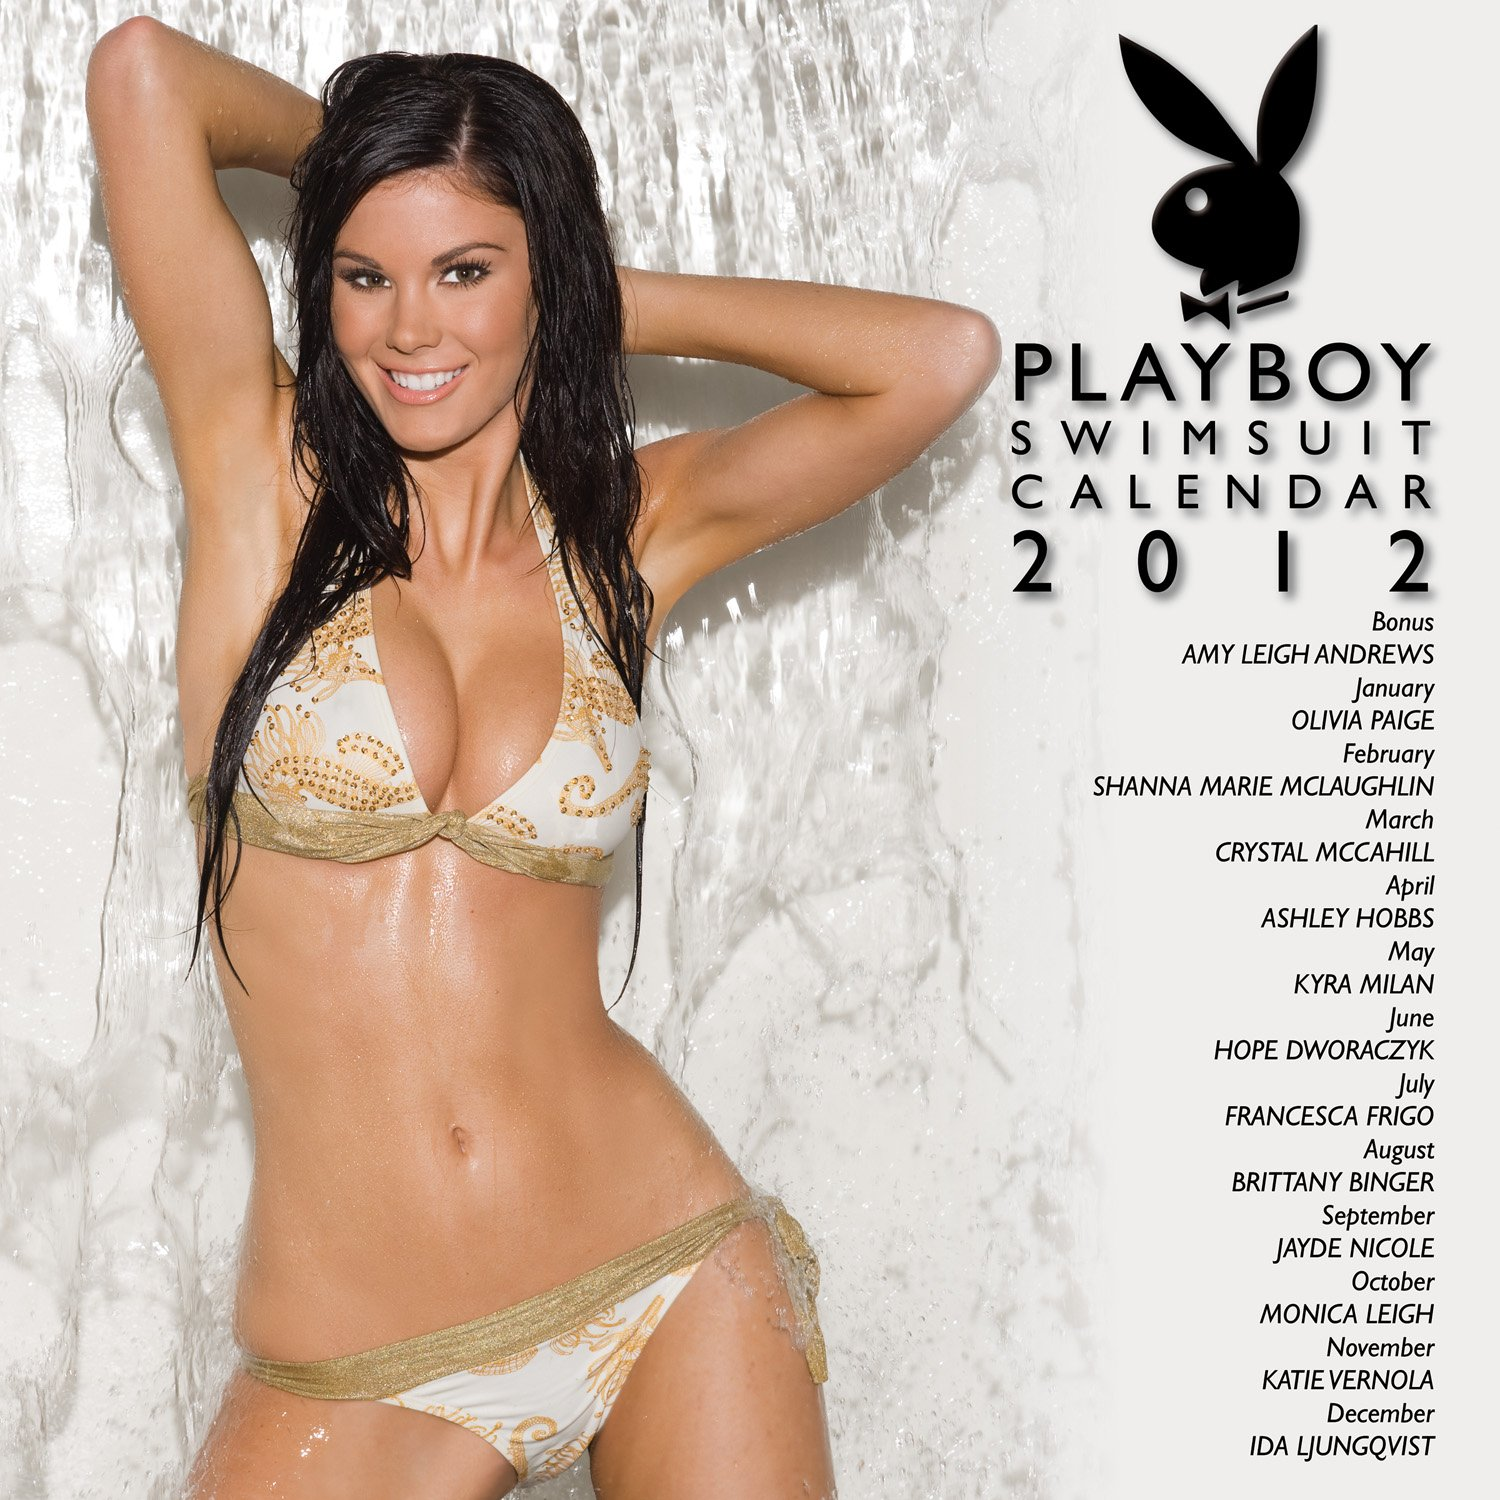 Amy leigh andrews pictures - 2012 Playboy Swimsuit 12x12 Wall Calendar Perfect Timing Turner 9781606778654 Amazon Com Books